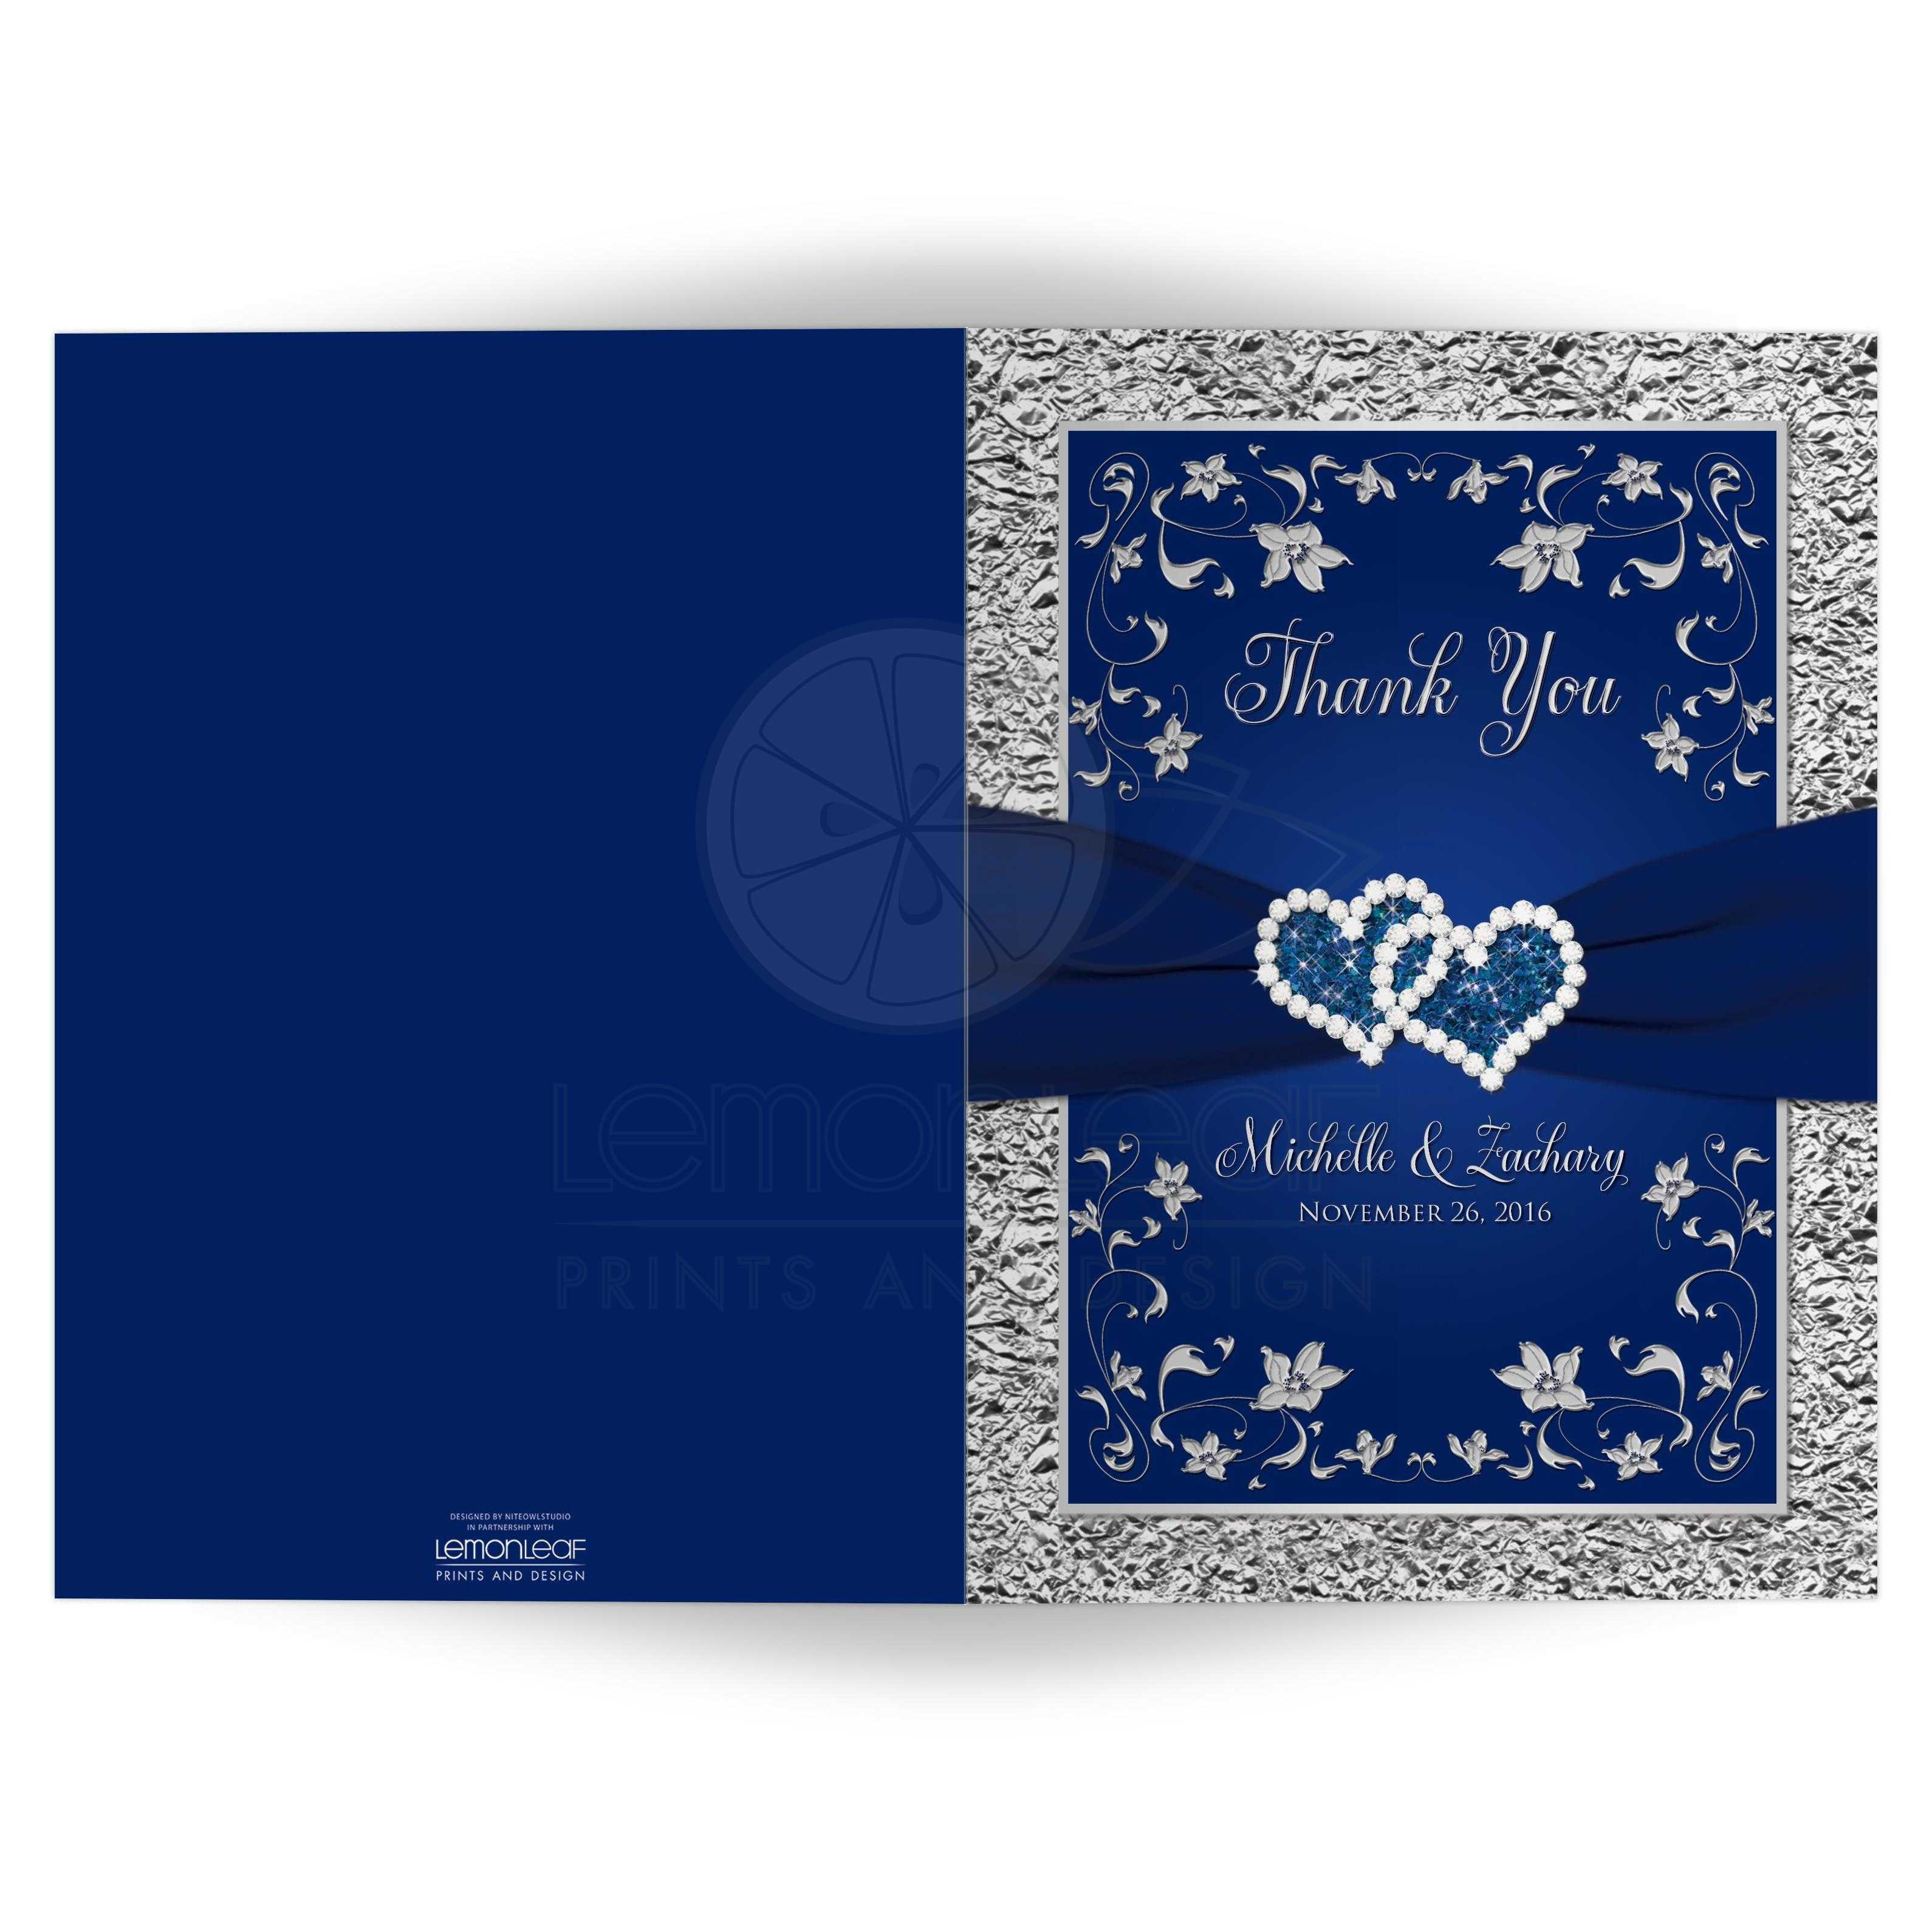 wedding photo thank you card a7 navy blue silver joined hearts